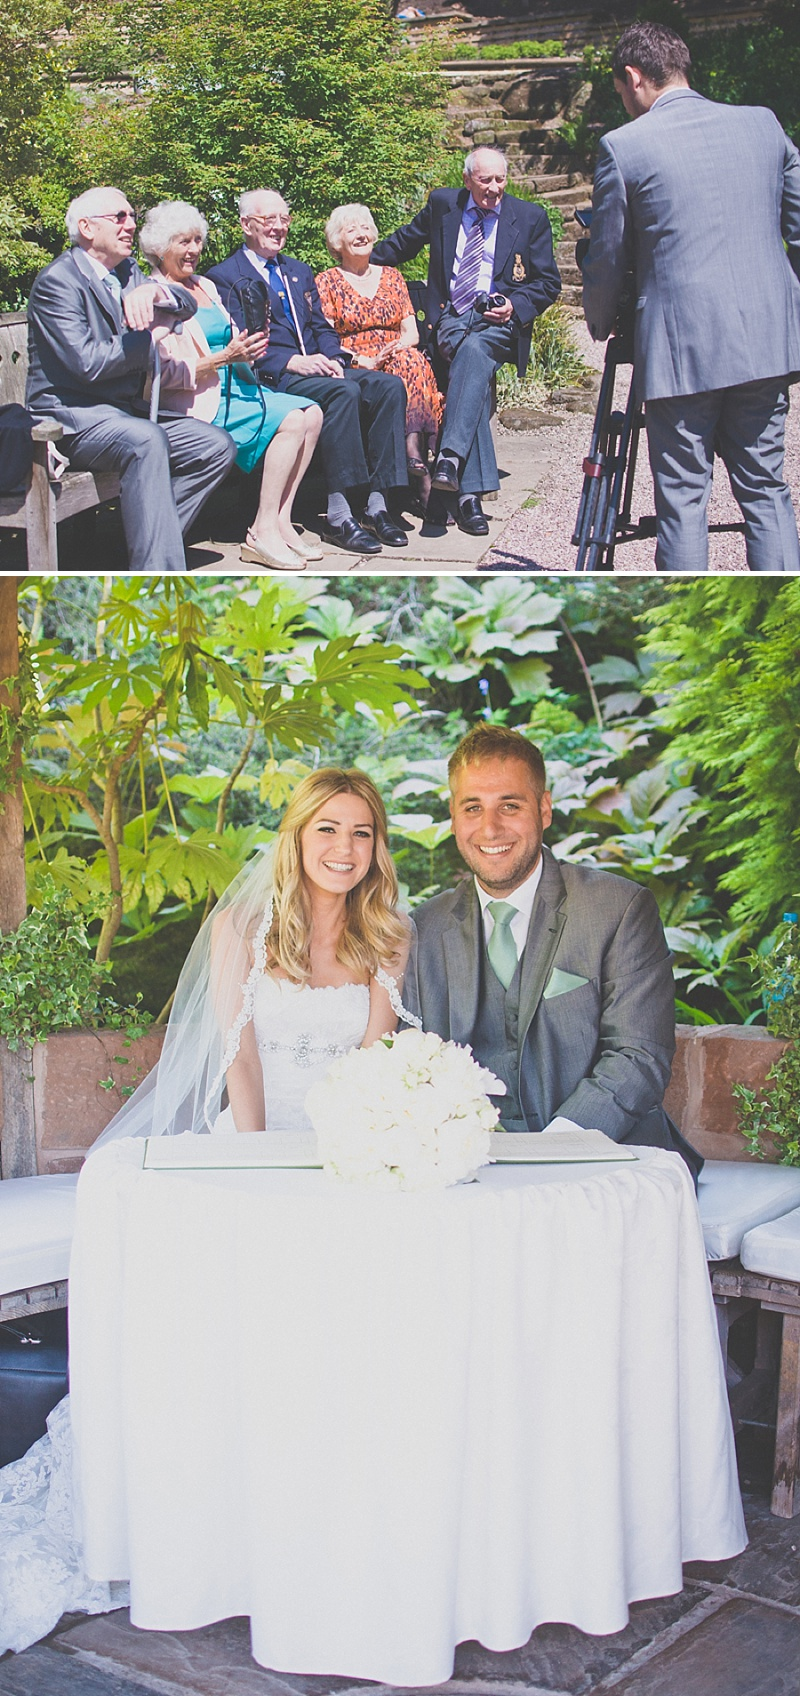 An Elegant White Themed Wedding At The Ness Botanic Gardens With Bride In Champagne From Blue By Enzoani With Aldo 'Corinne' Shoes Images By Rivington Photography_0023